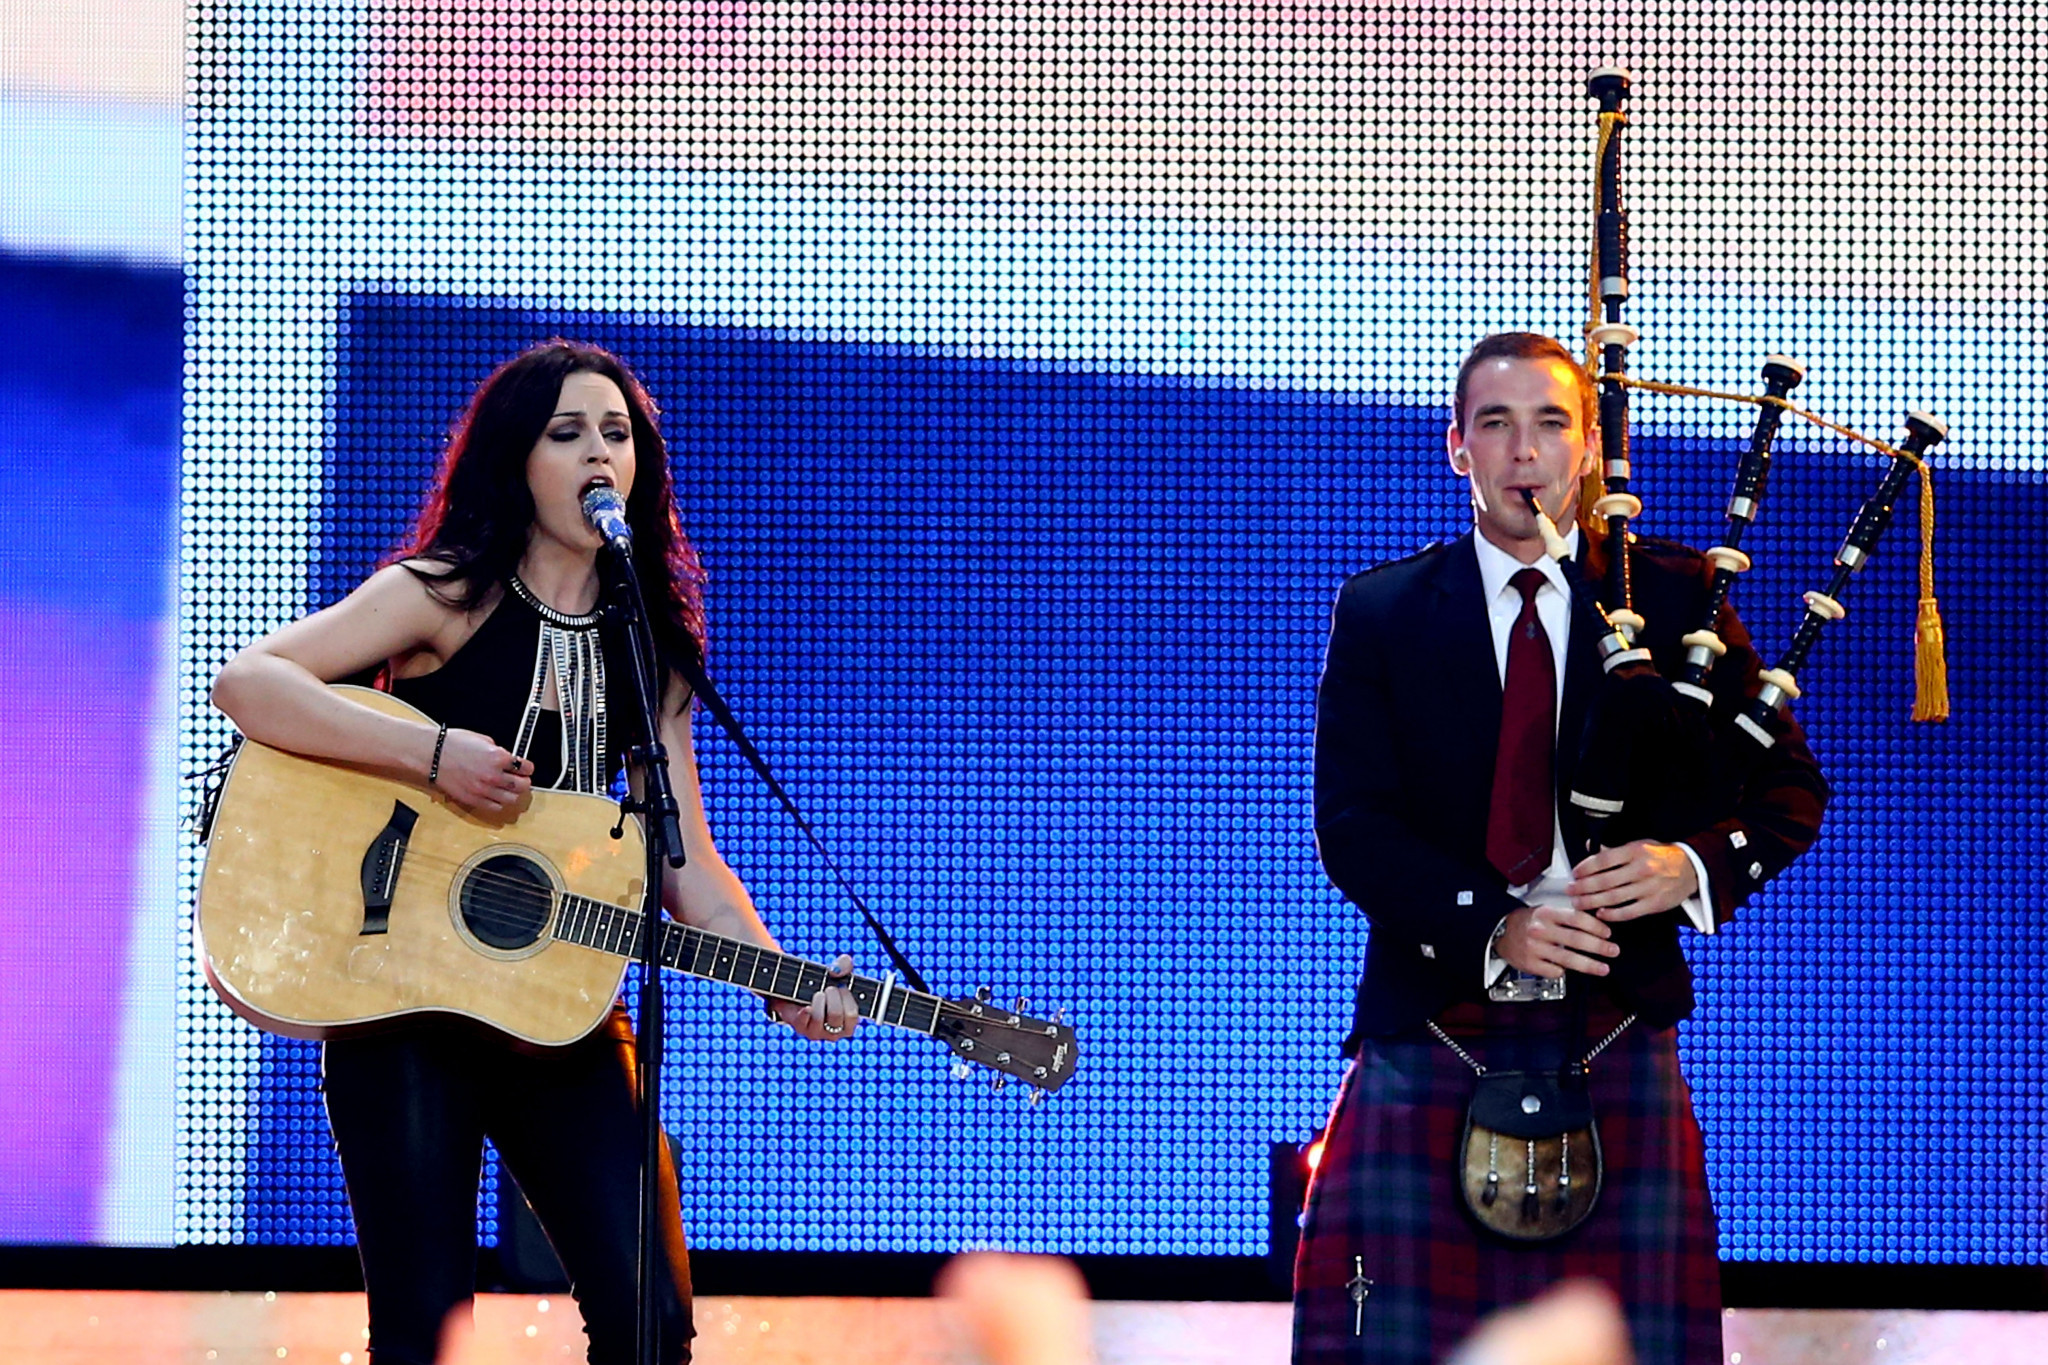 Amy Macdonald performs alongside a piper at the Glasgow 2014 Opening Ceremony ©Getty Images